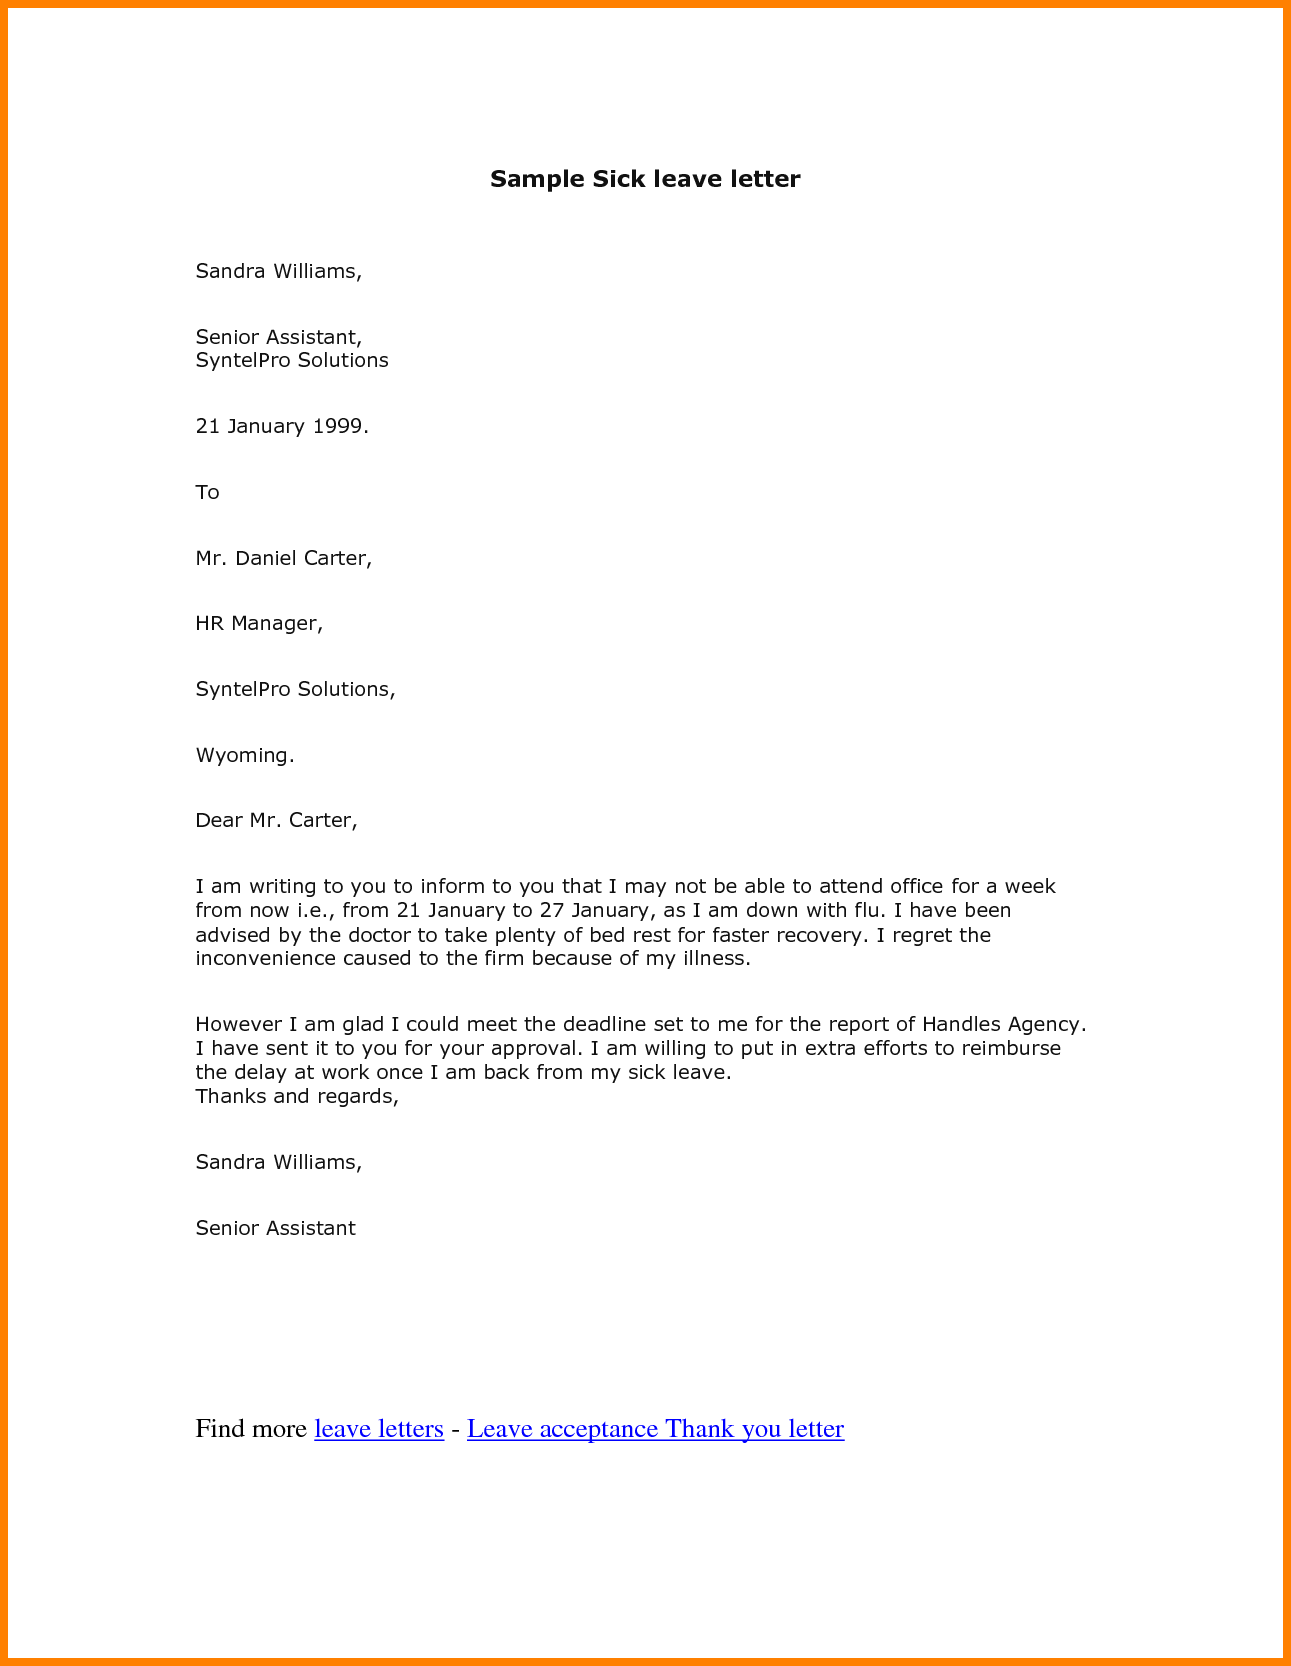 Writing Formal Cover Letters. PAge 2 A Guide TO WriTinG COver LeTTers And  OTher EmpLOymenT  Contents Of A Cover Letter